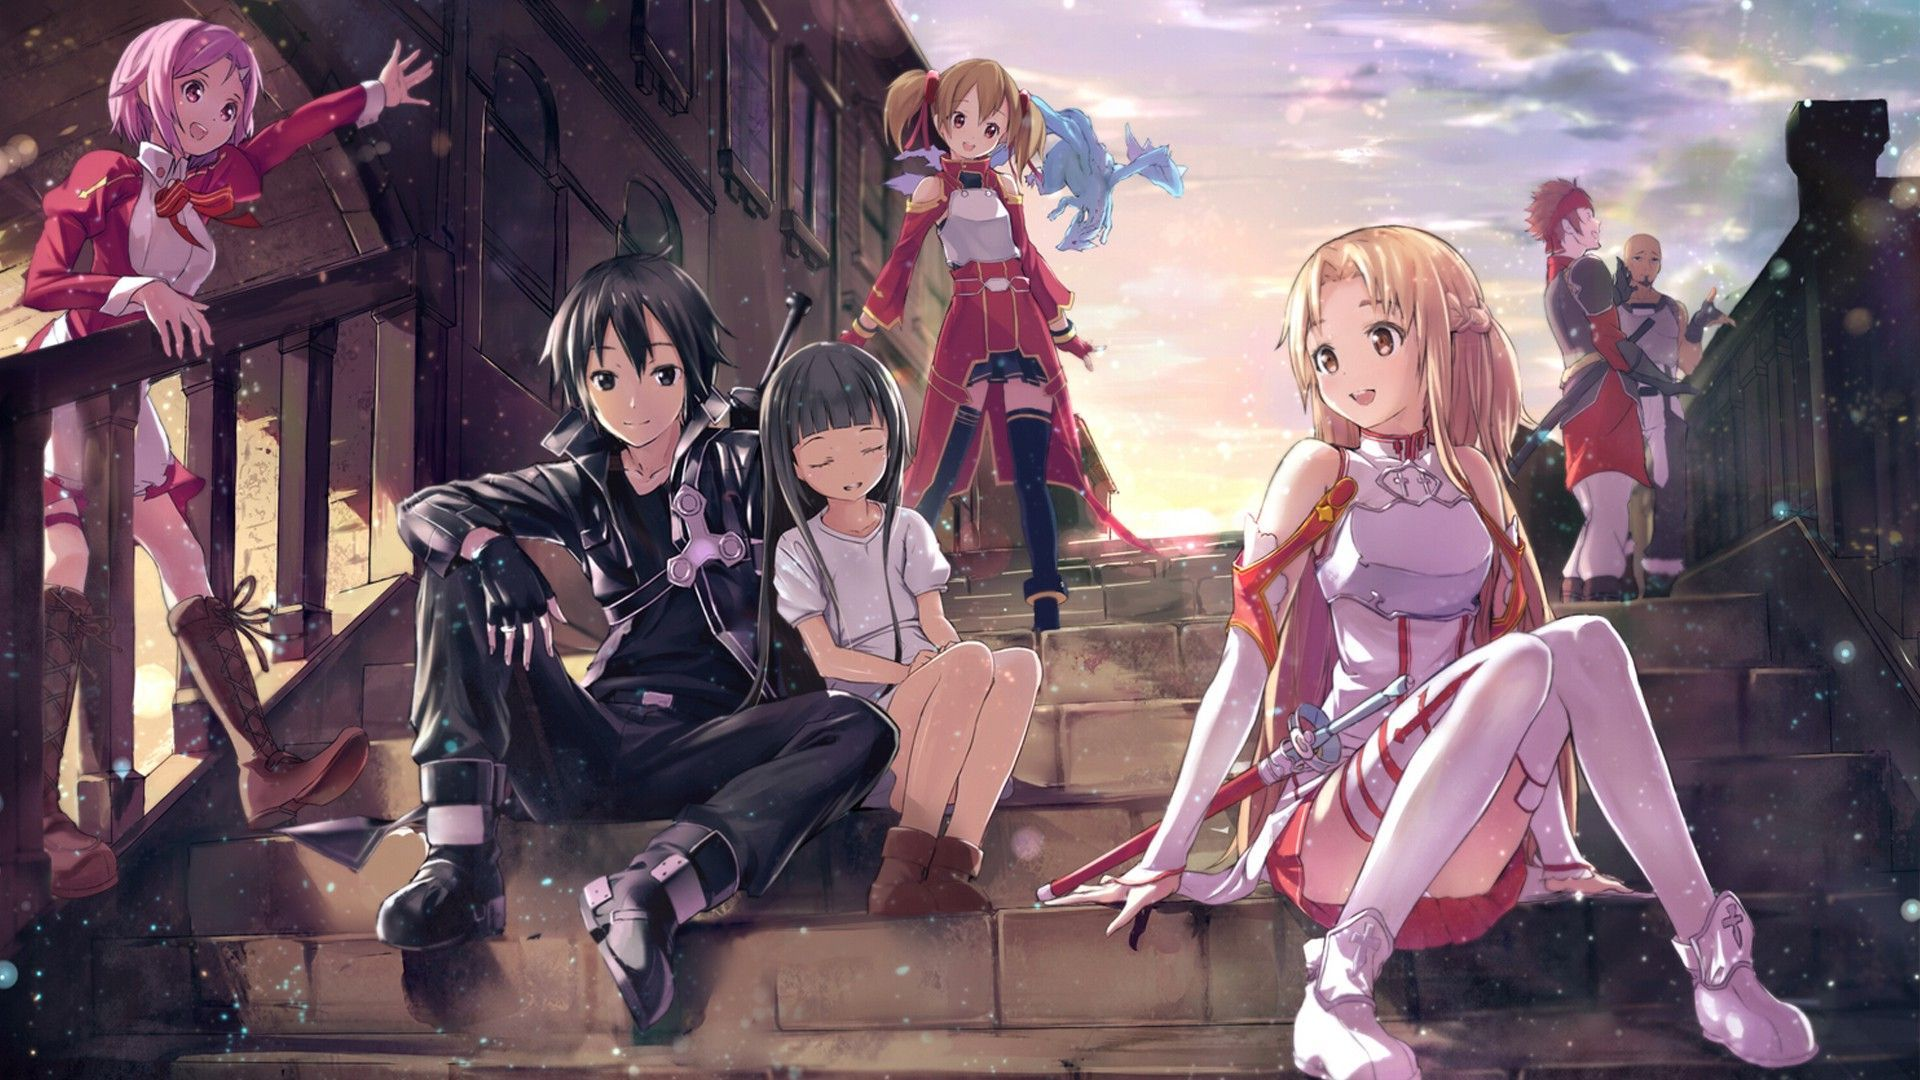 Mycooldog123 Images Sword Art Online 53d70189d2c68 HD Wallpaper And Background Photos